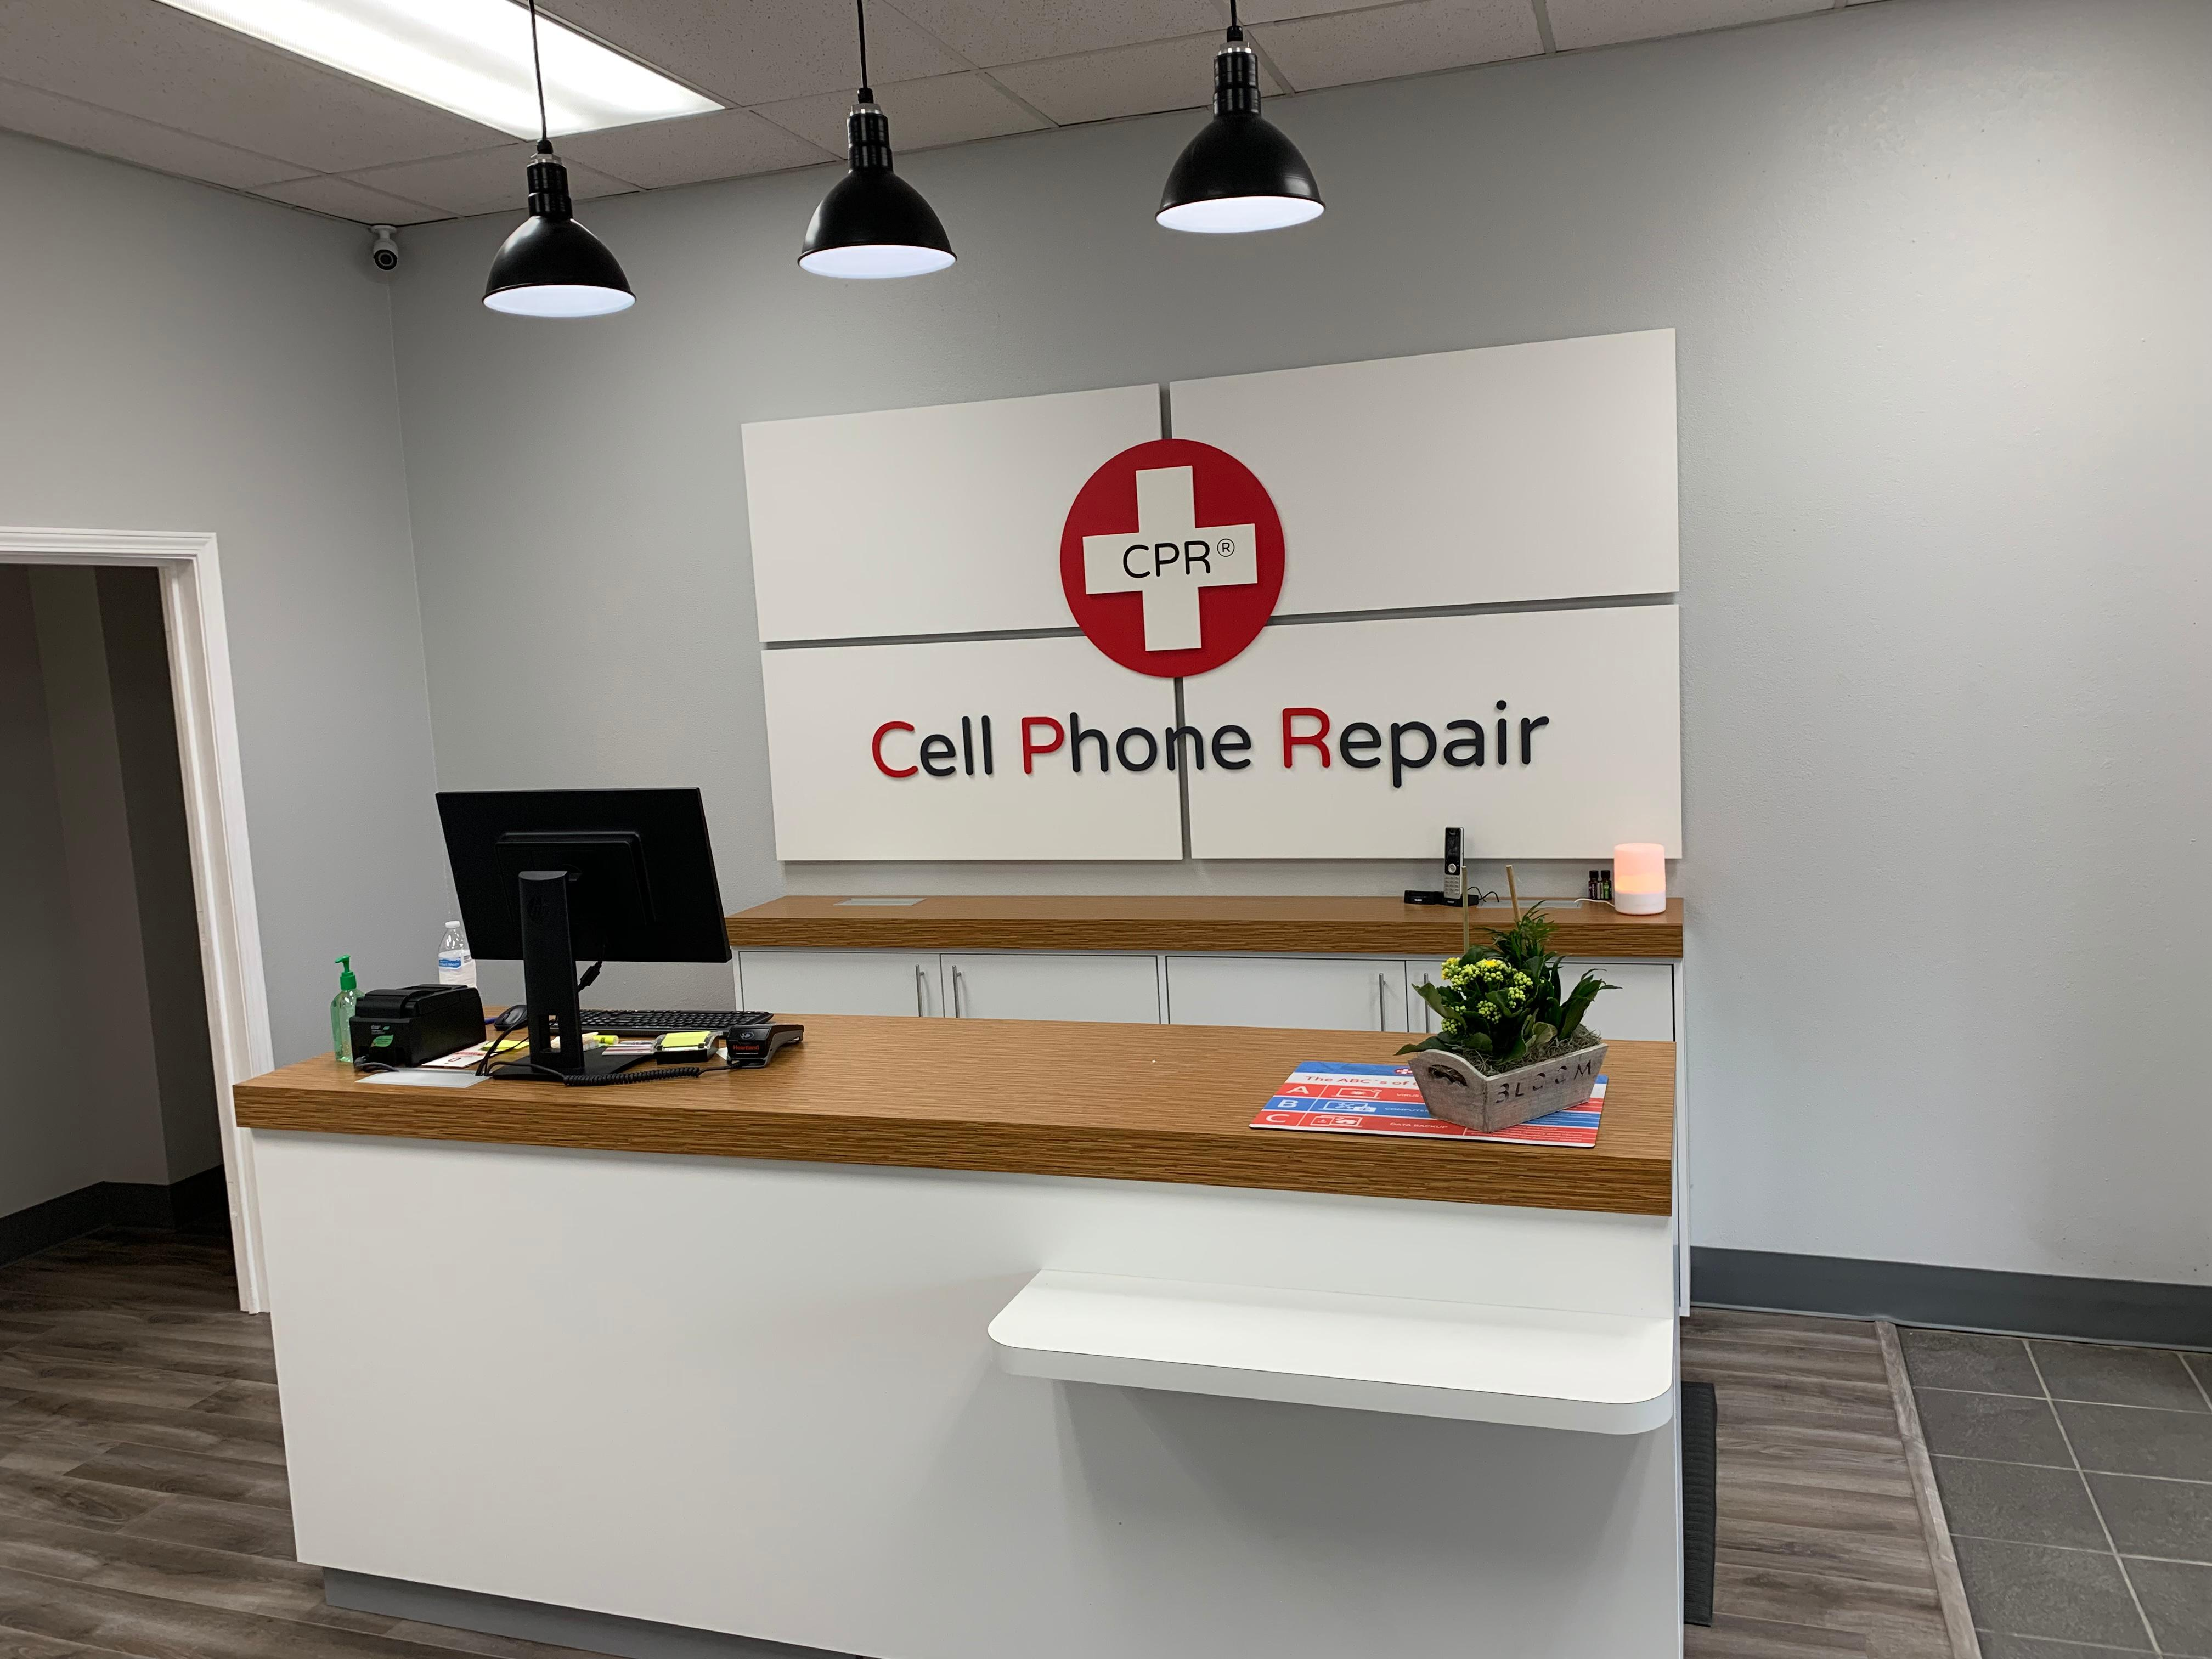 CPR Cell Phone Repair Oxford image 1